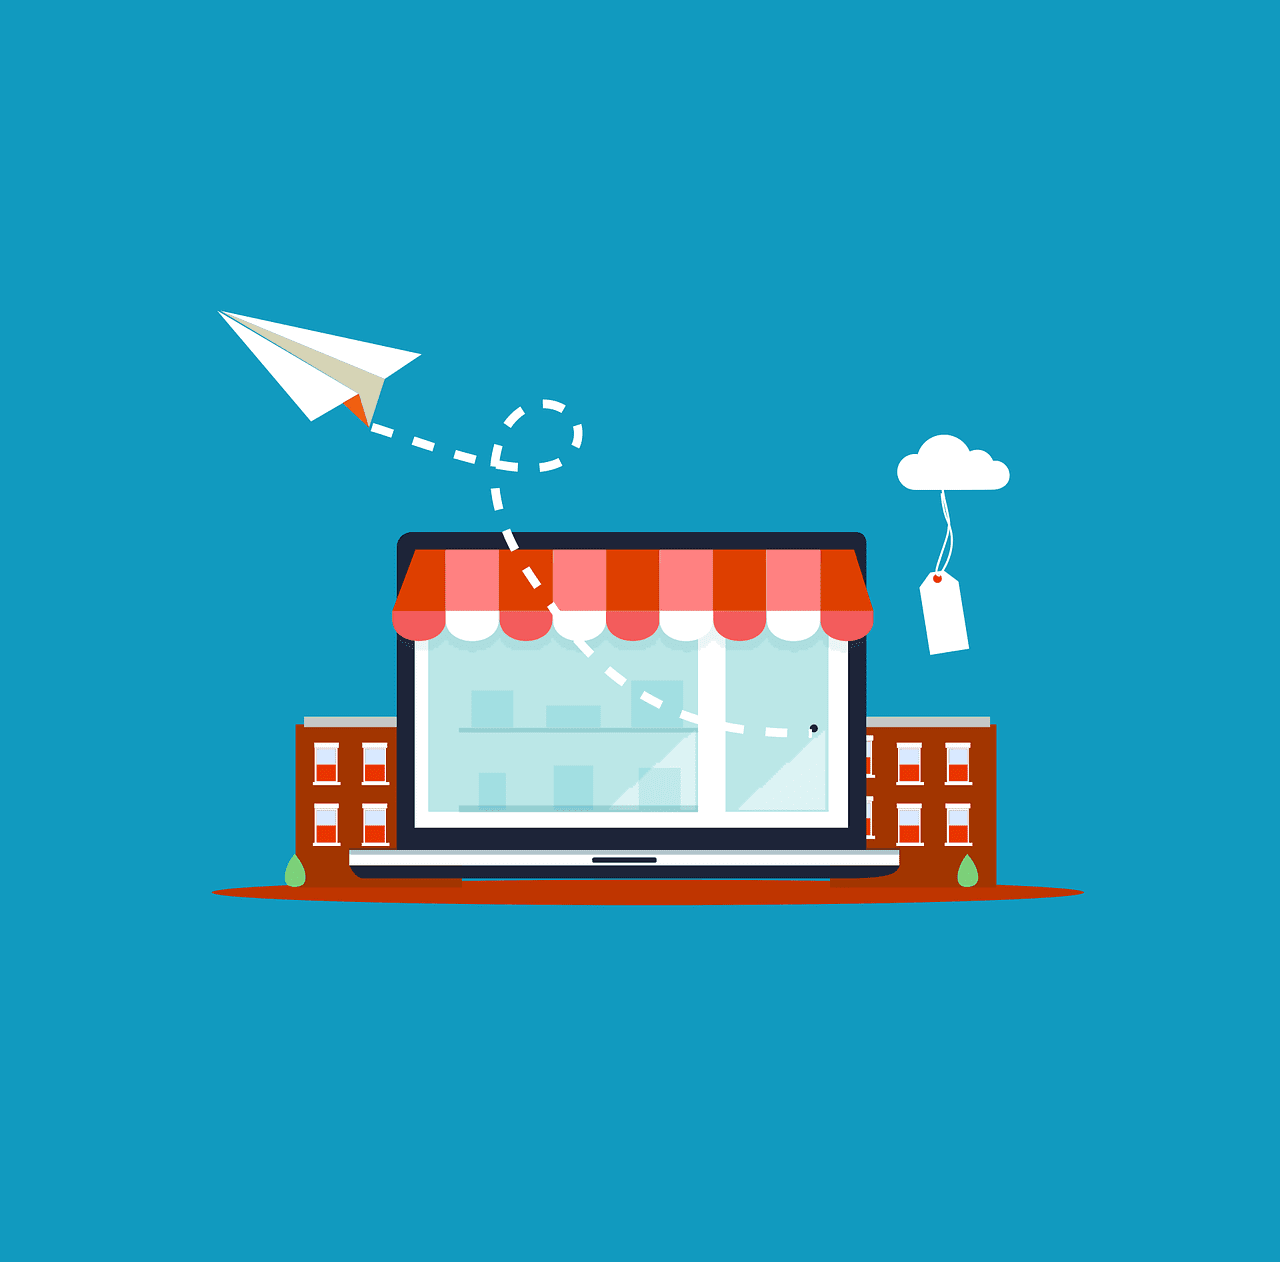 StrategyDriven Online Marketing and Website Development Article |Online Presence|How to Get the Most Out of Your Business's Online Presence